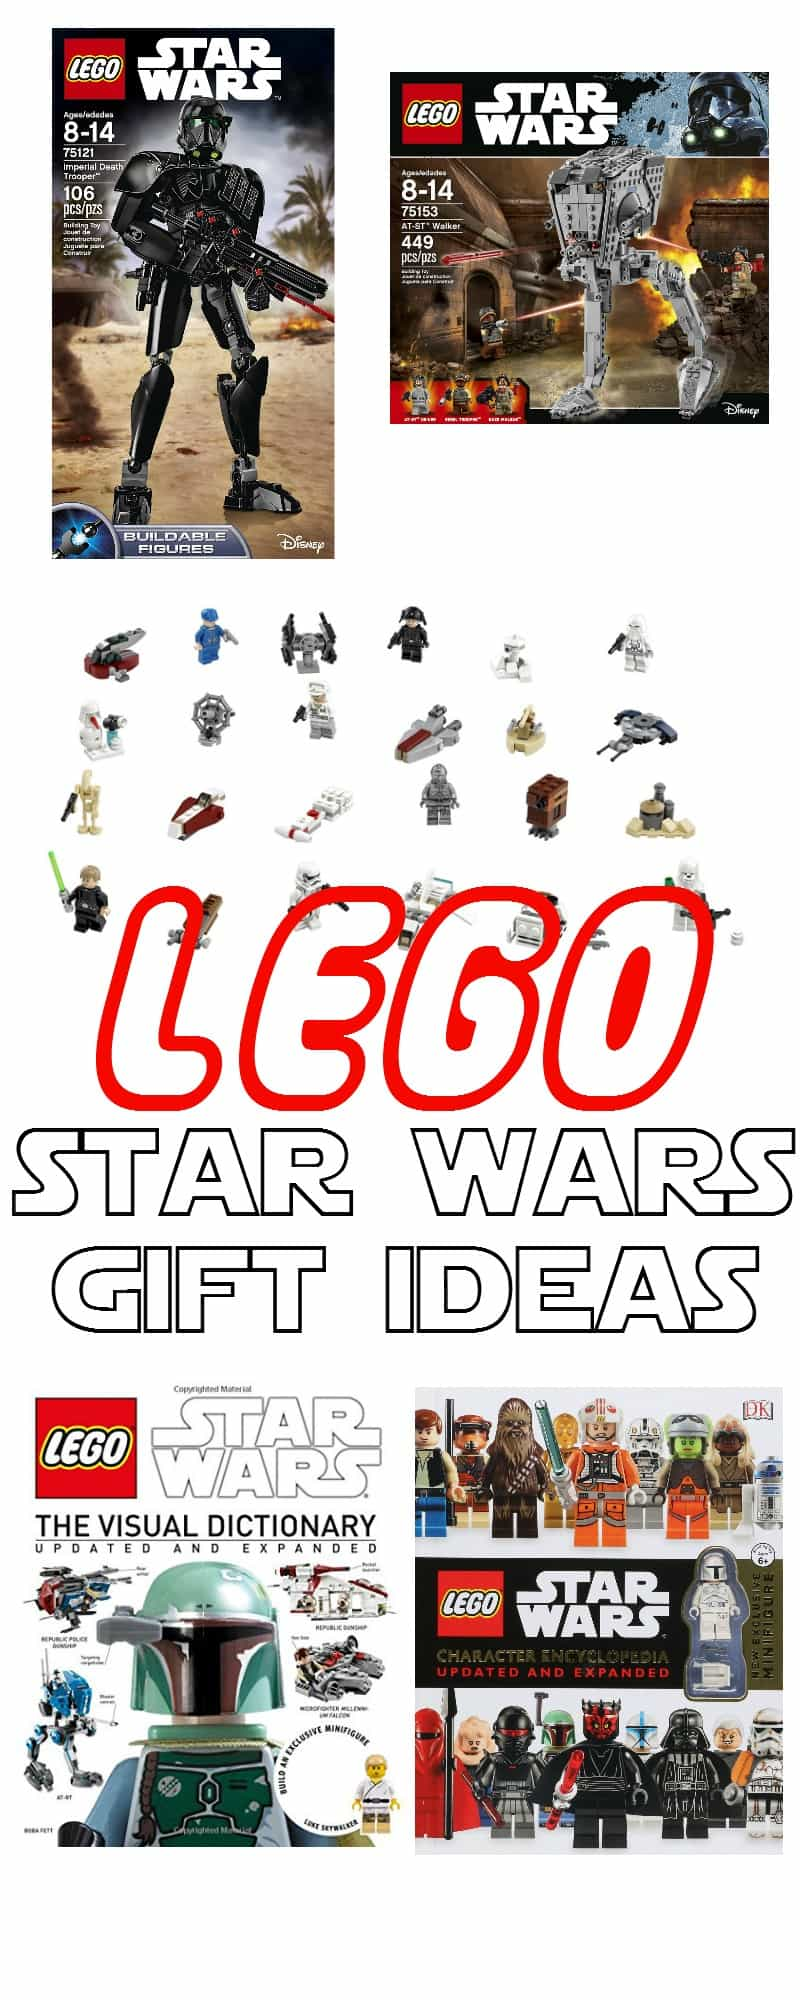 The Ultimate LEGO Star Wars Gift Guide for All Occasions